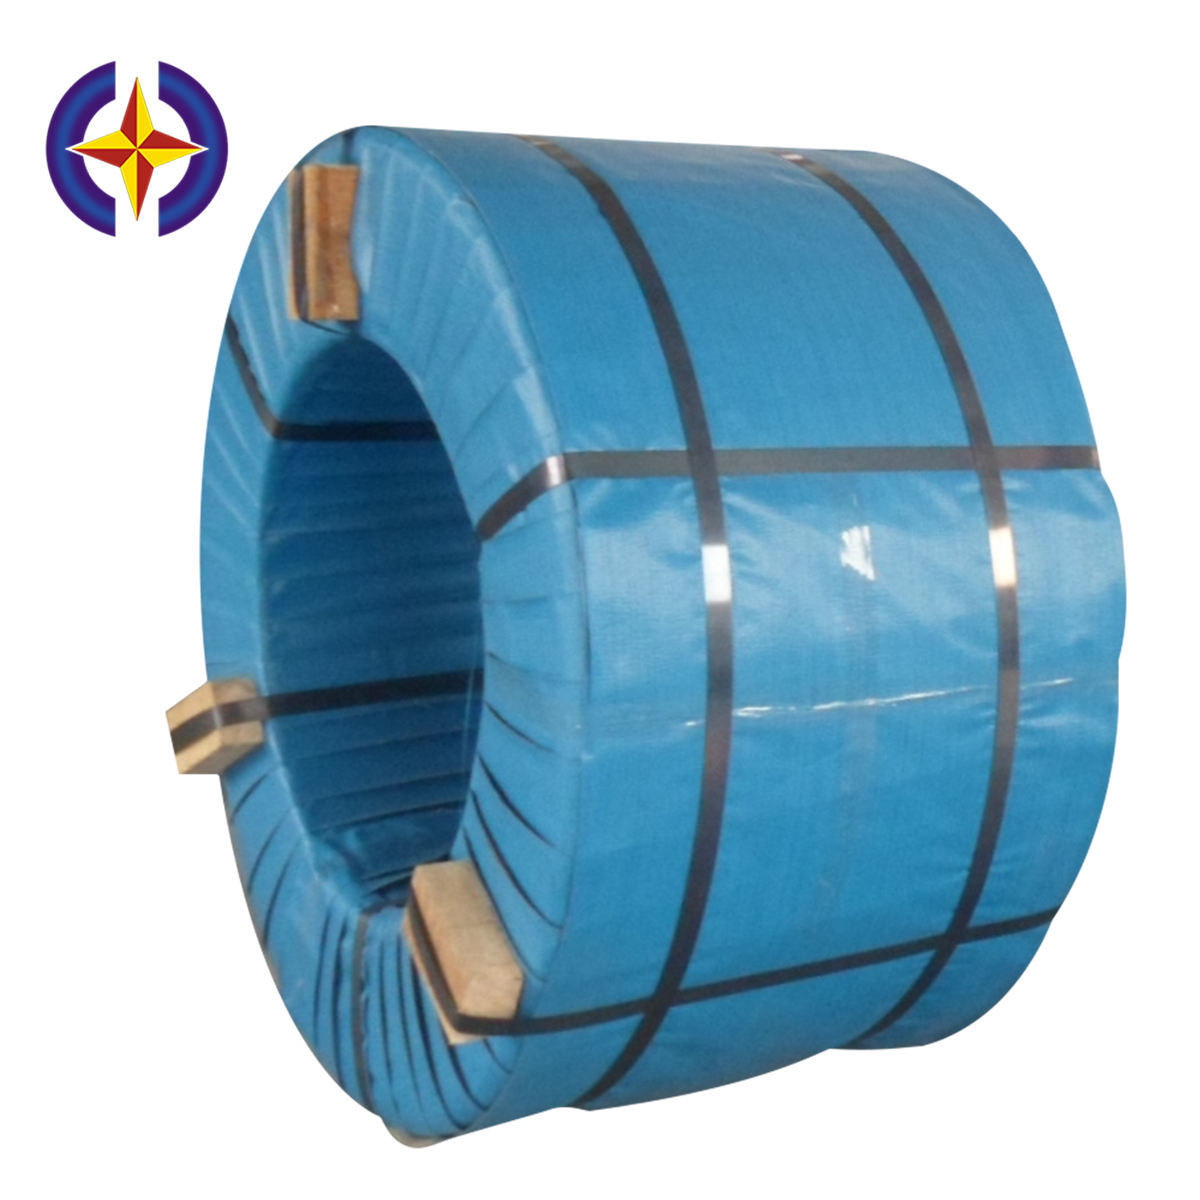 Post tension cable suppliers bonded 12.7mm PC strand with dcl certificate